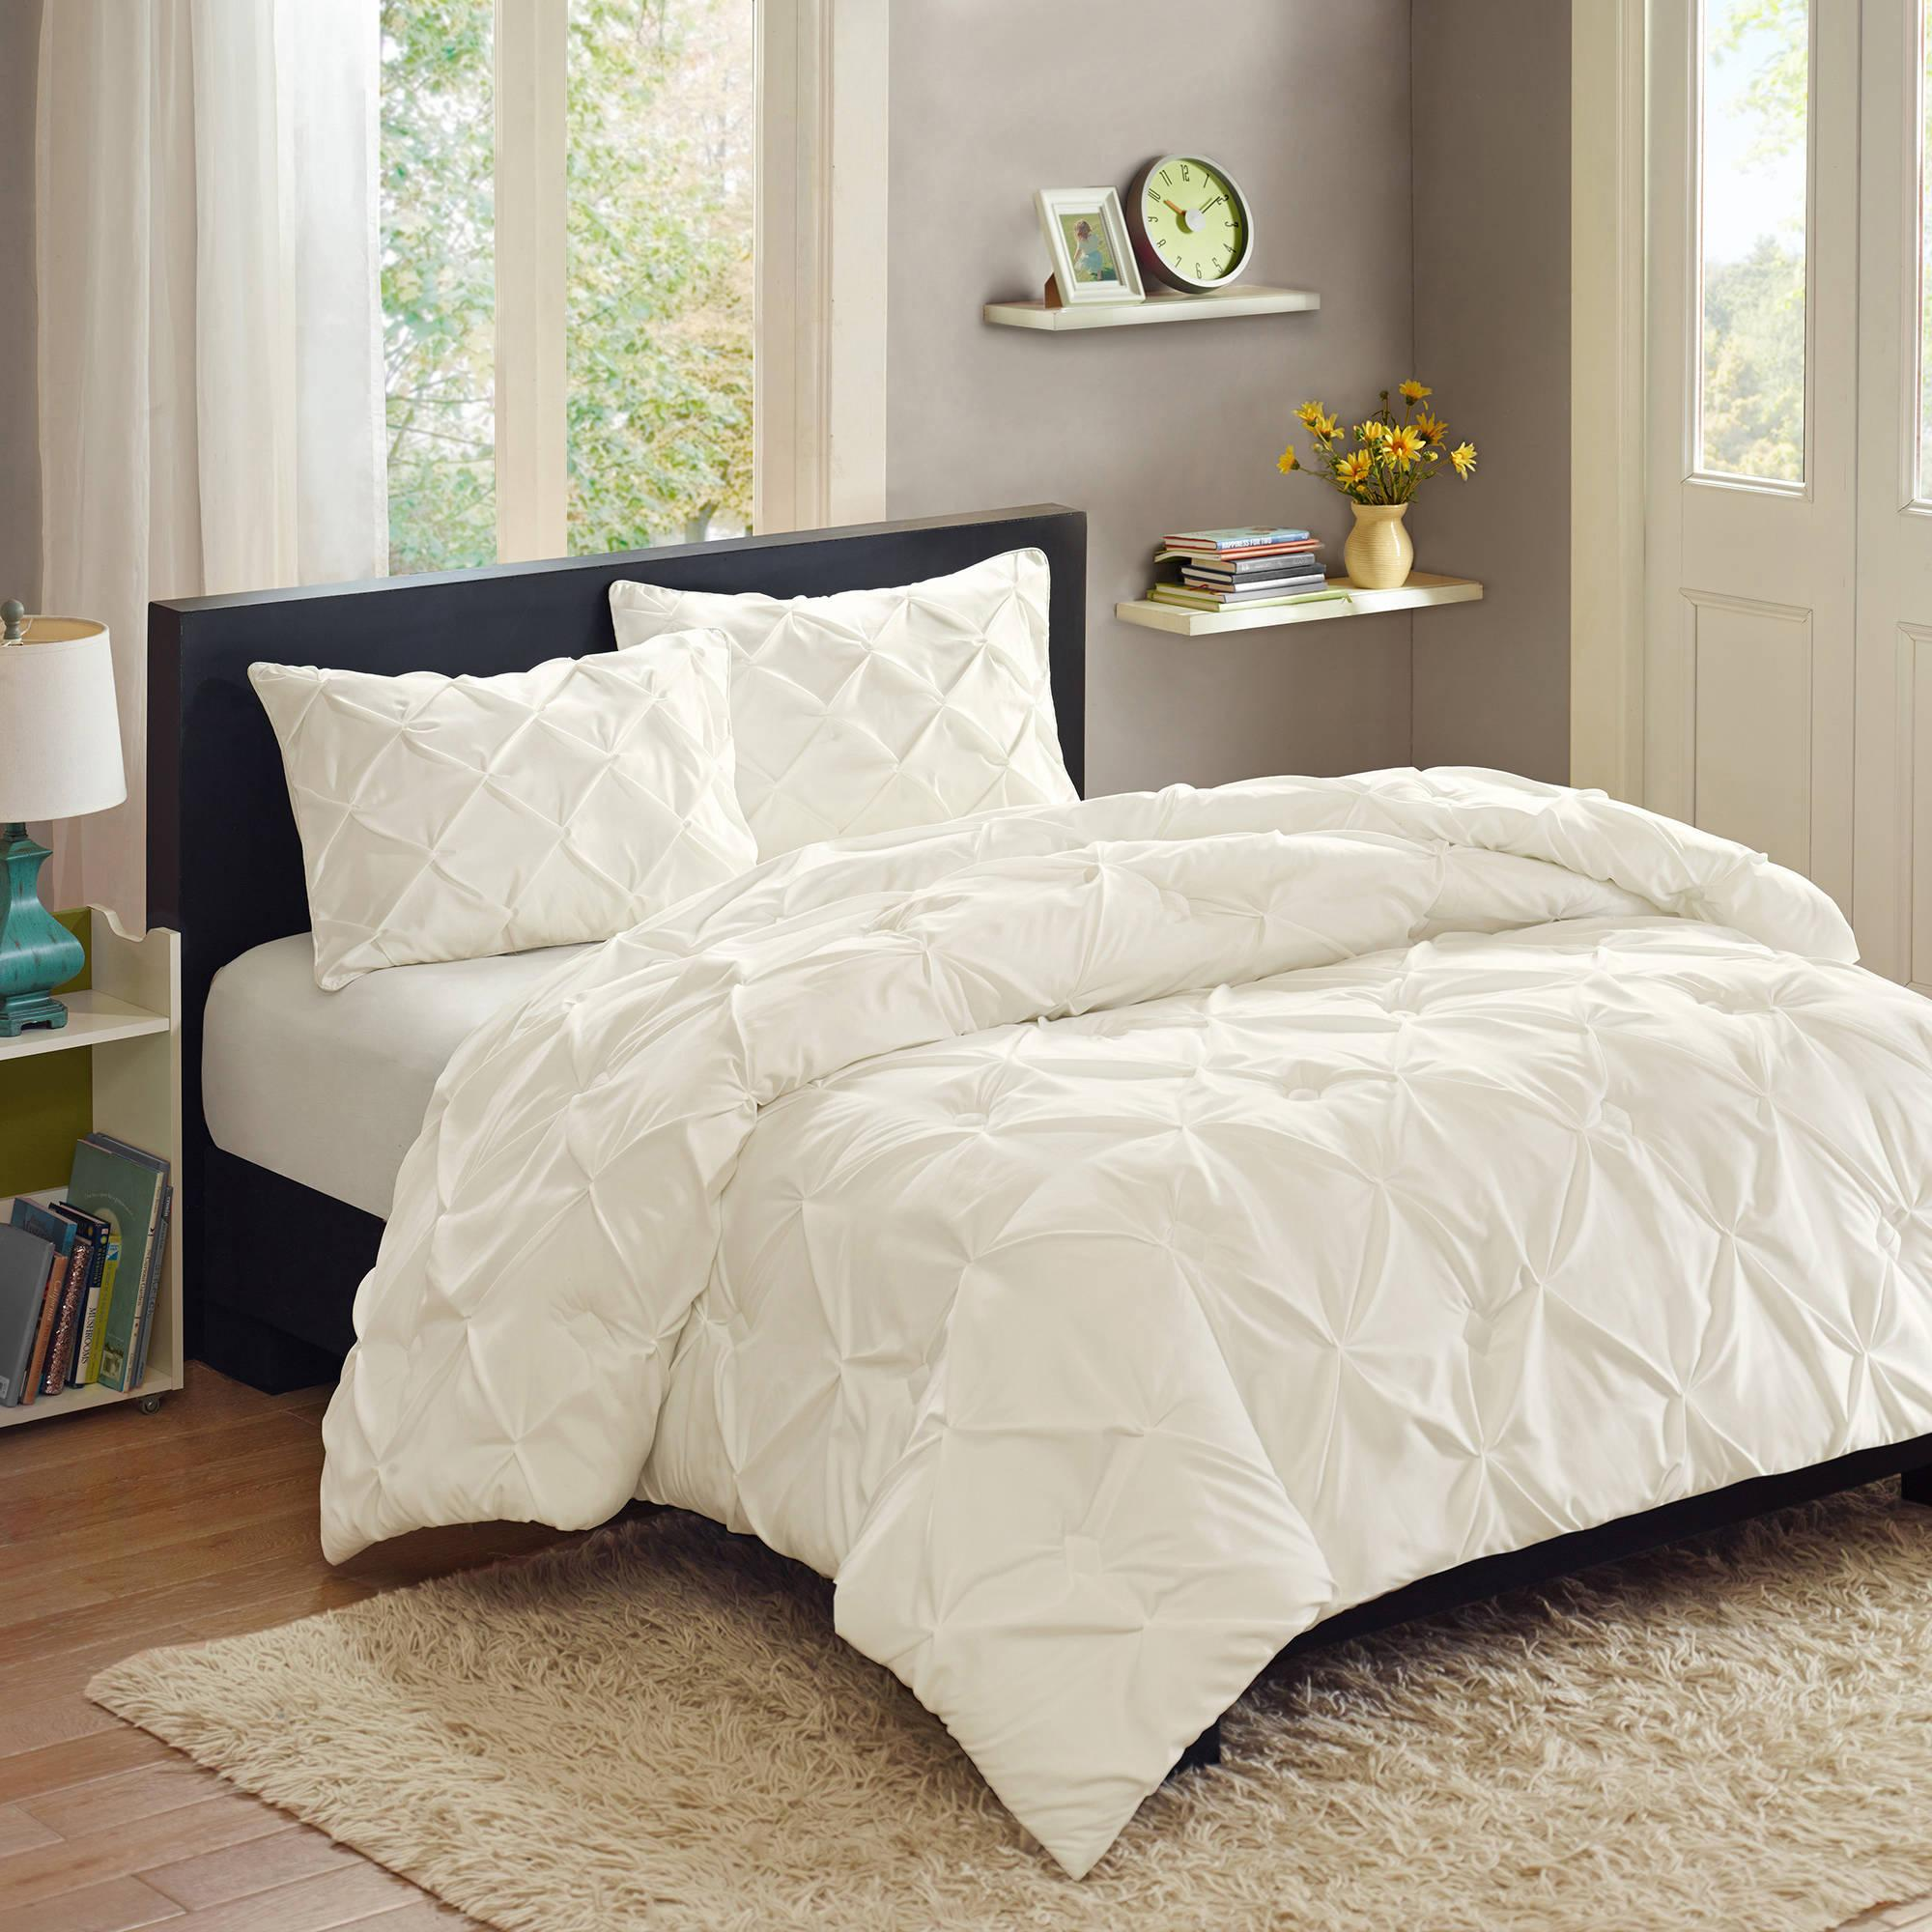 White Better Homes And Garden Comforter Sets On Dark Wooden Bed Frame With  White Curtains And